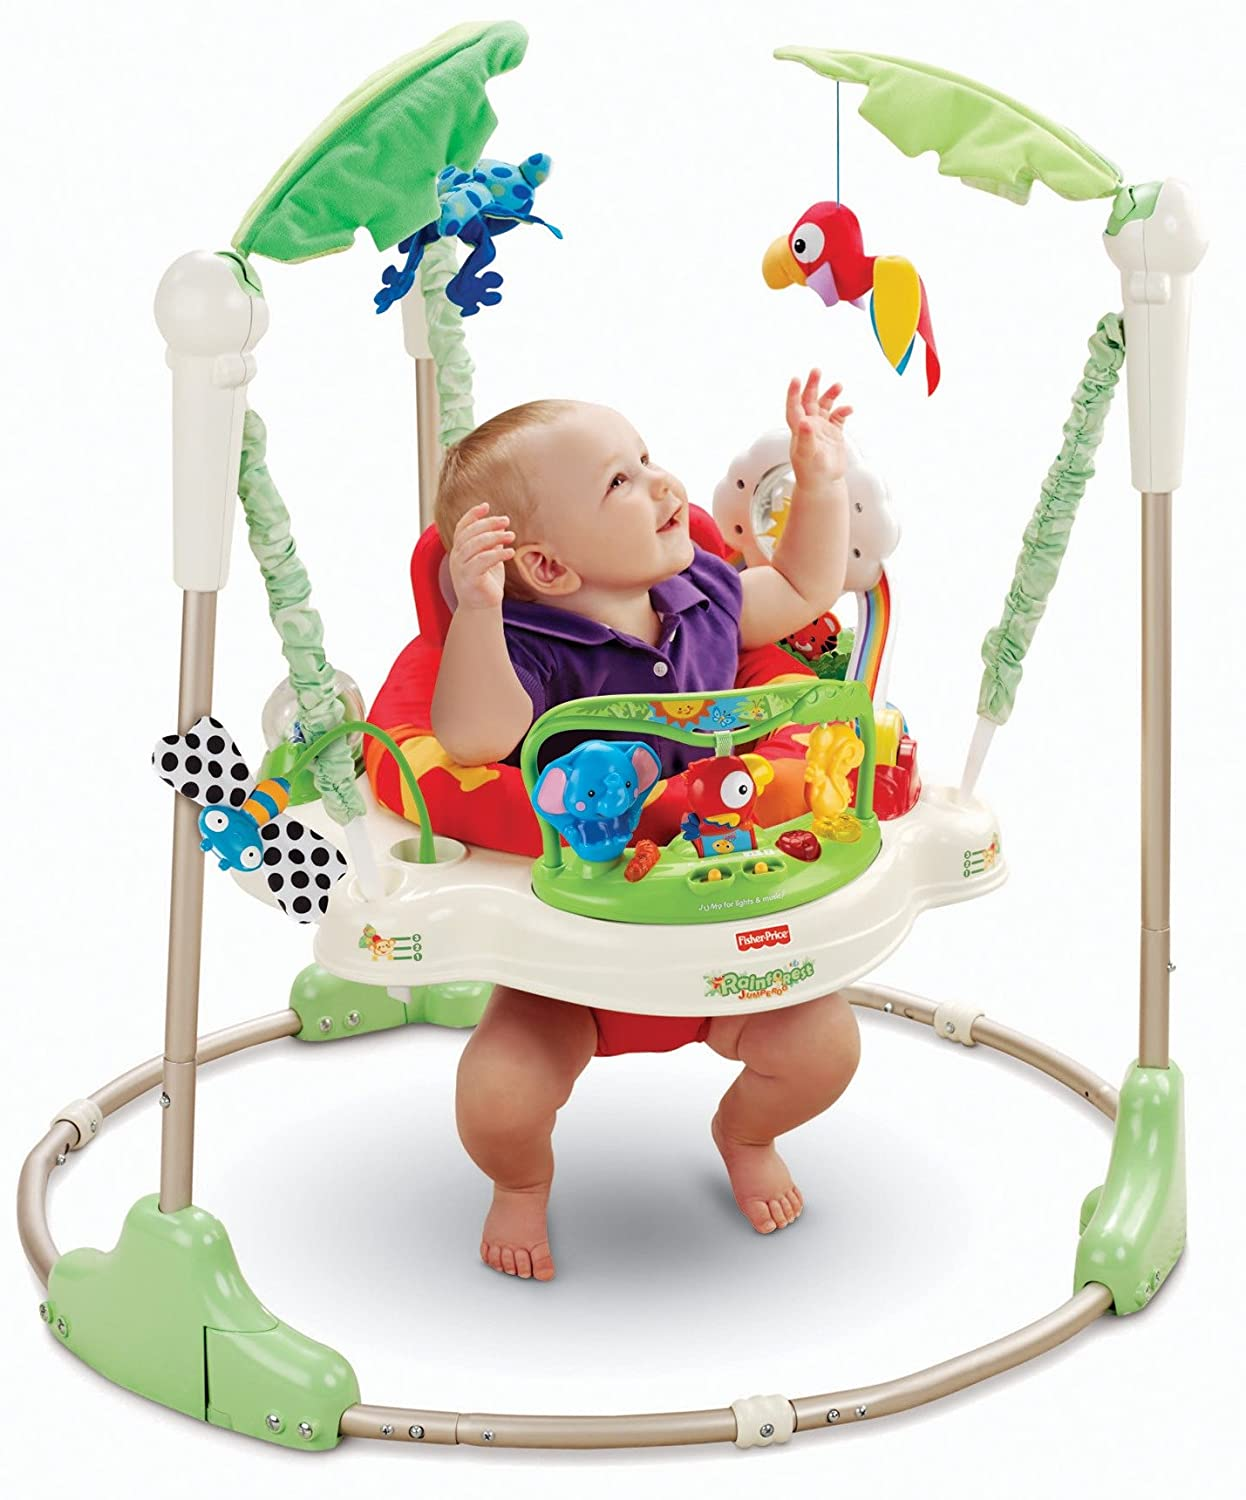 Baby einstein animal discovery cards toys amp games on popscreen - Amazon Com Fisher Price Rainforest Jumperoo Infant Bouncers And Rockers Baby